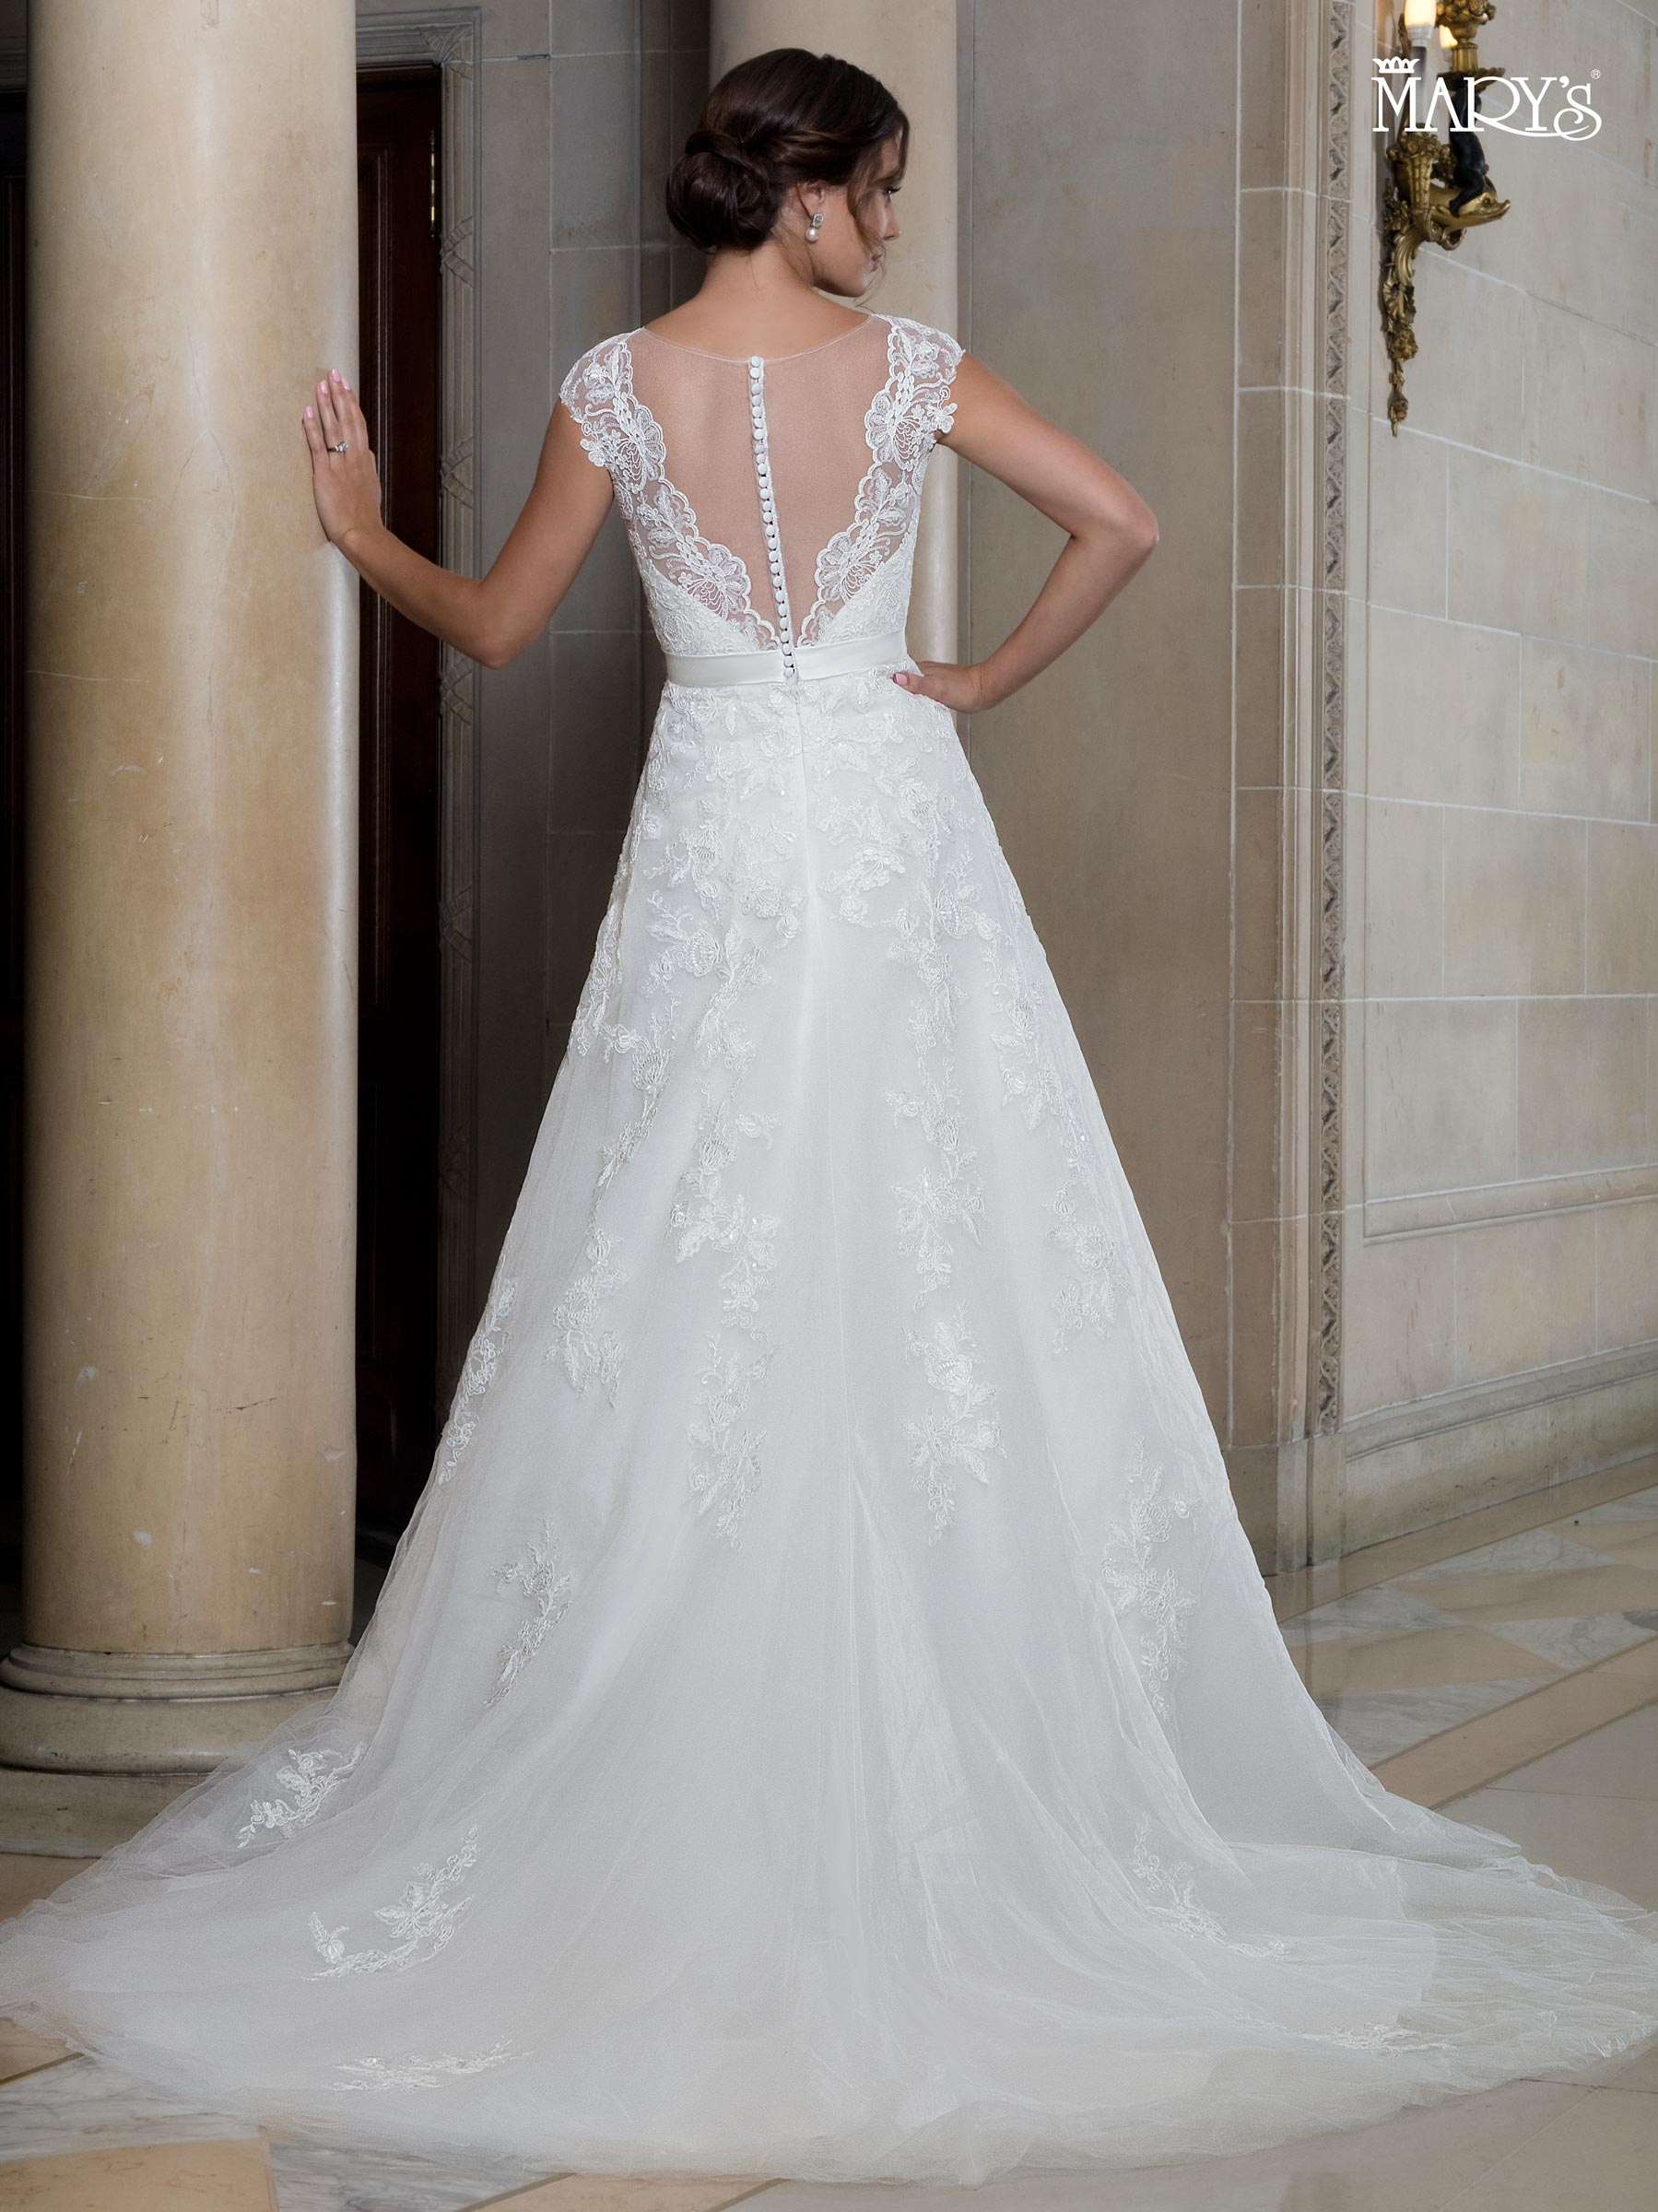 Bridal Wedding Dresses | Mary's | Style - MB3013